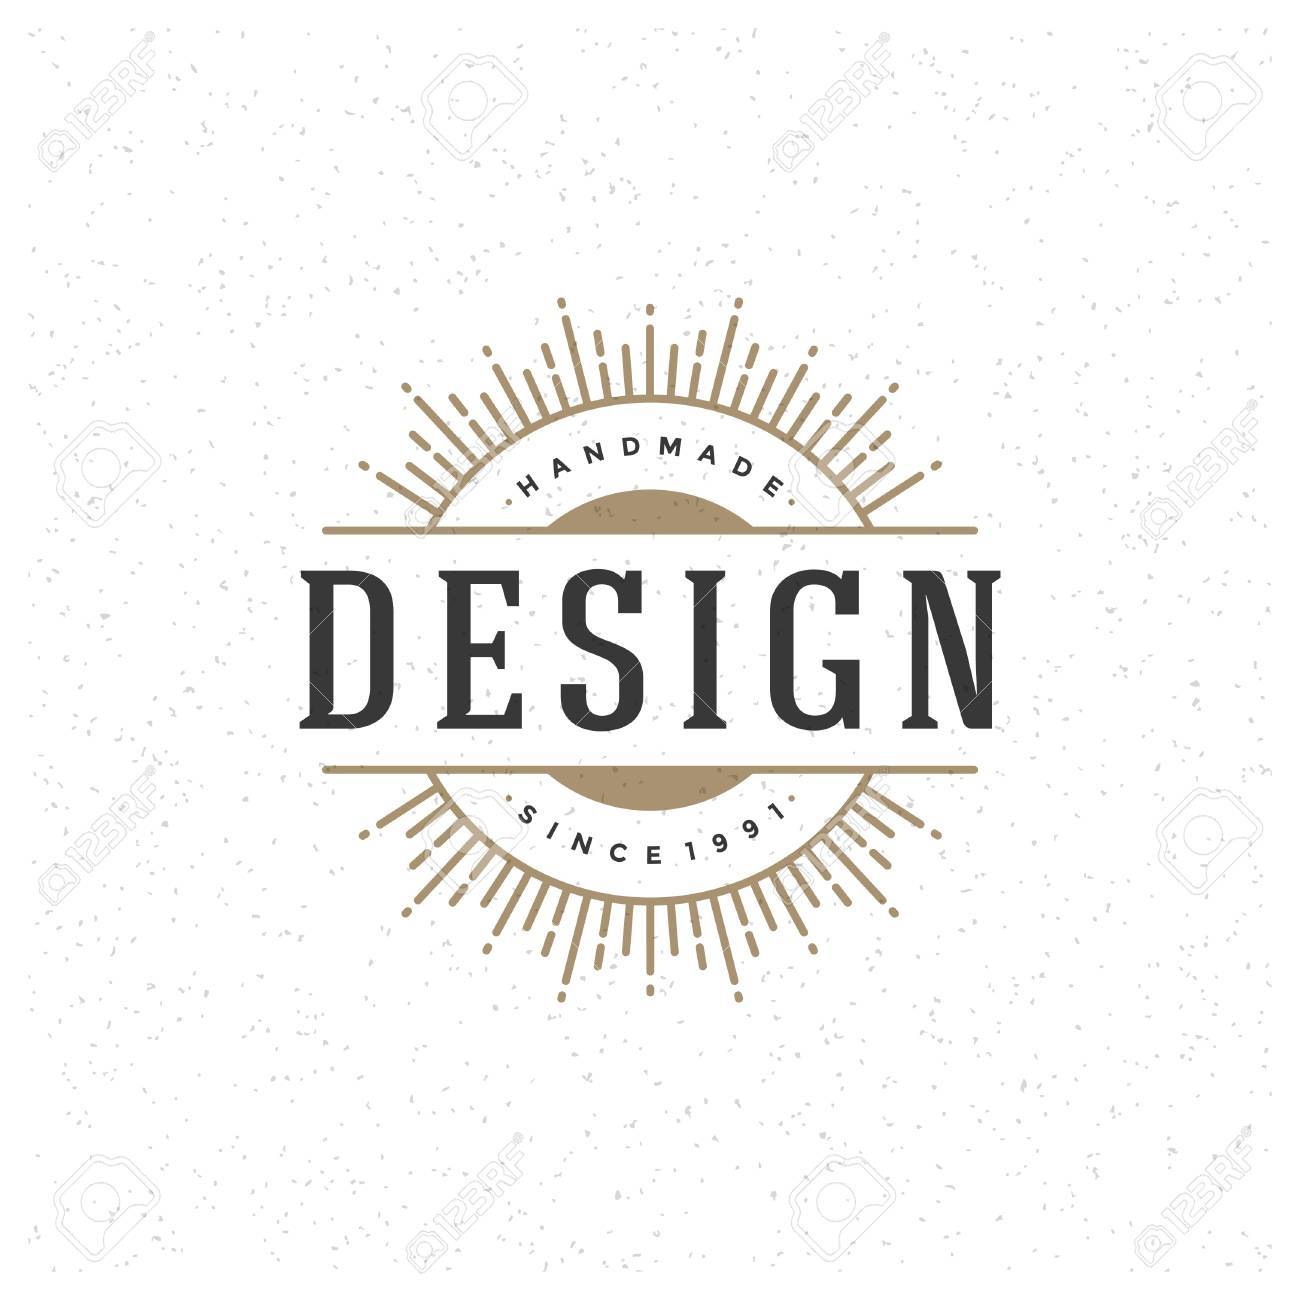 Retro vintage insignia label or badge vector design element retro vintage insignia label or badge vector design element business sign template stock cheaphphosting Images